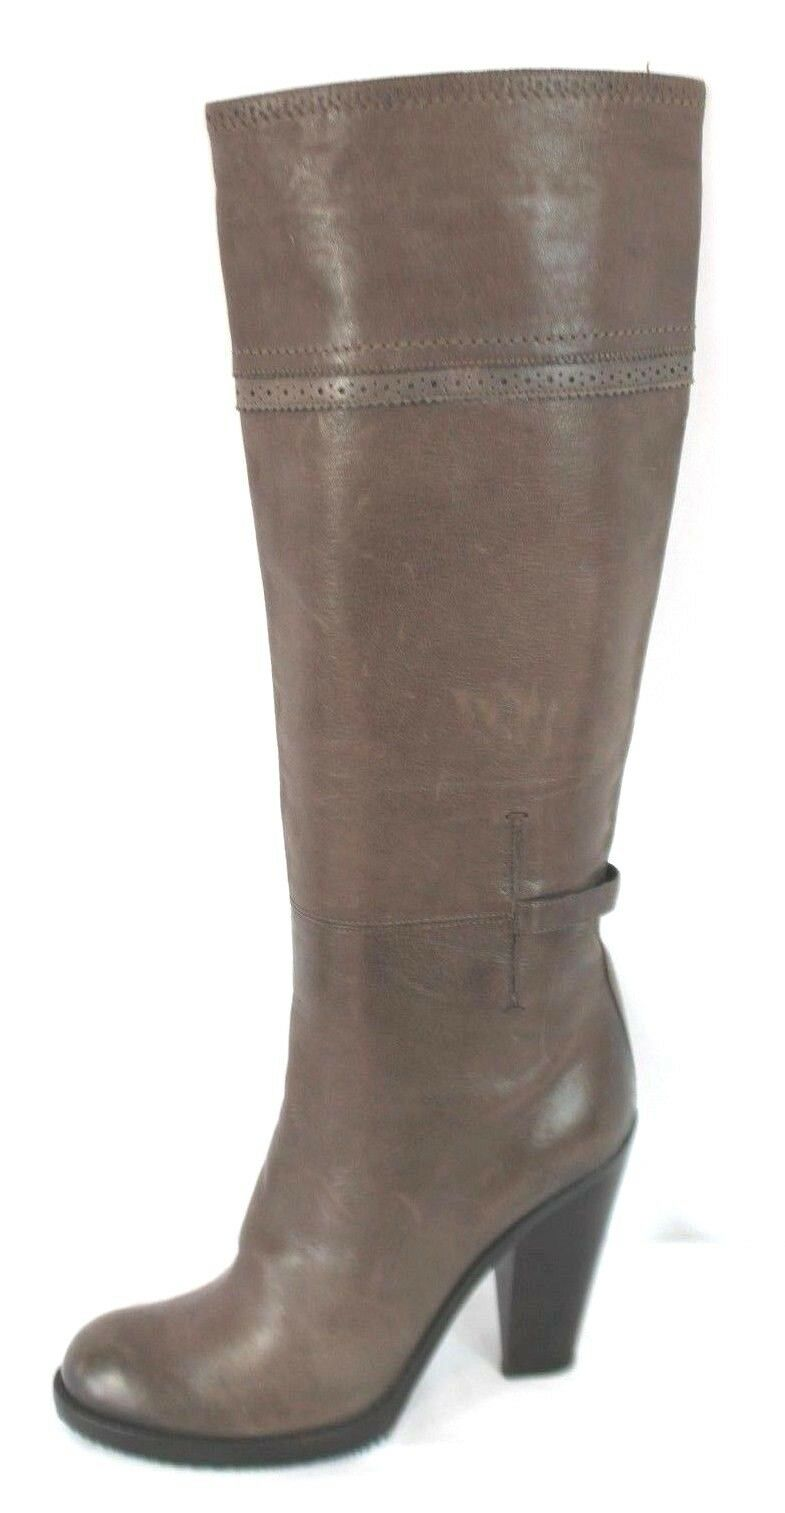 685 COSTUME NATIONAL Brown Leather Knee-High Pull On Boots shoes Size 41